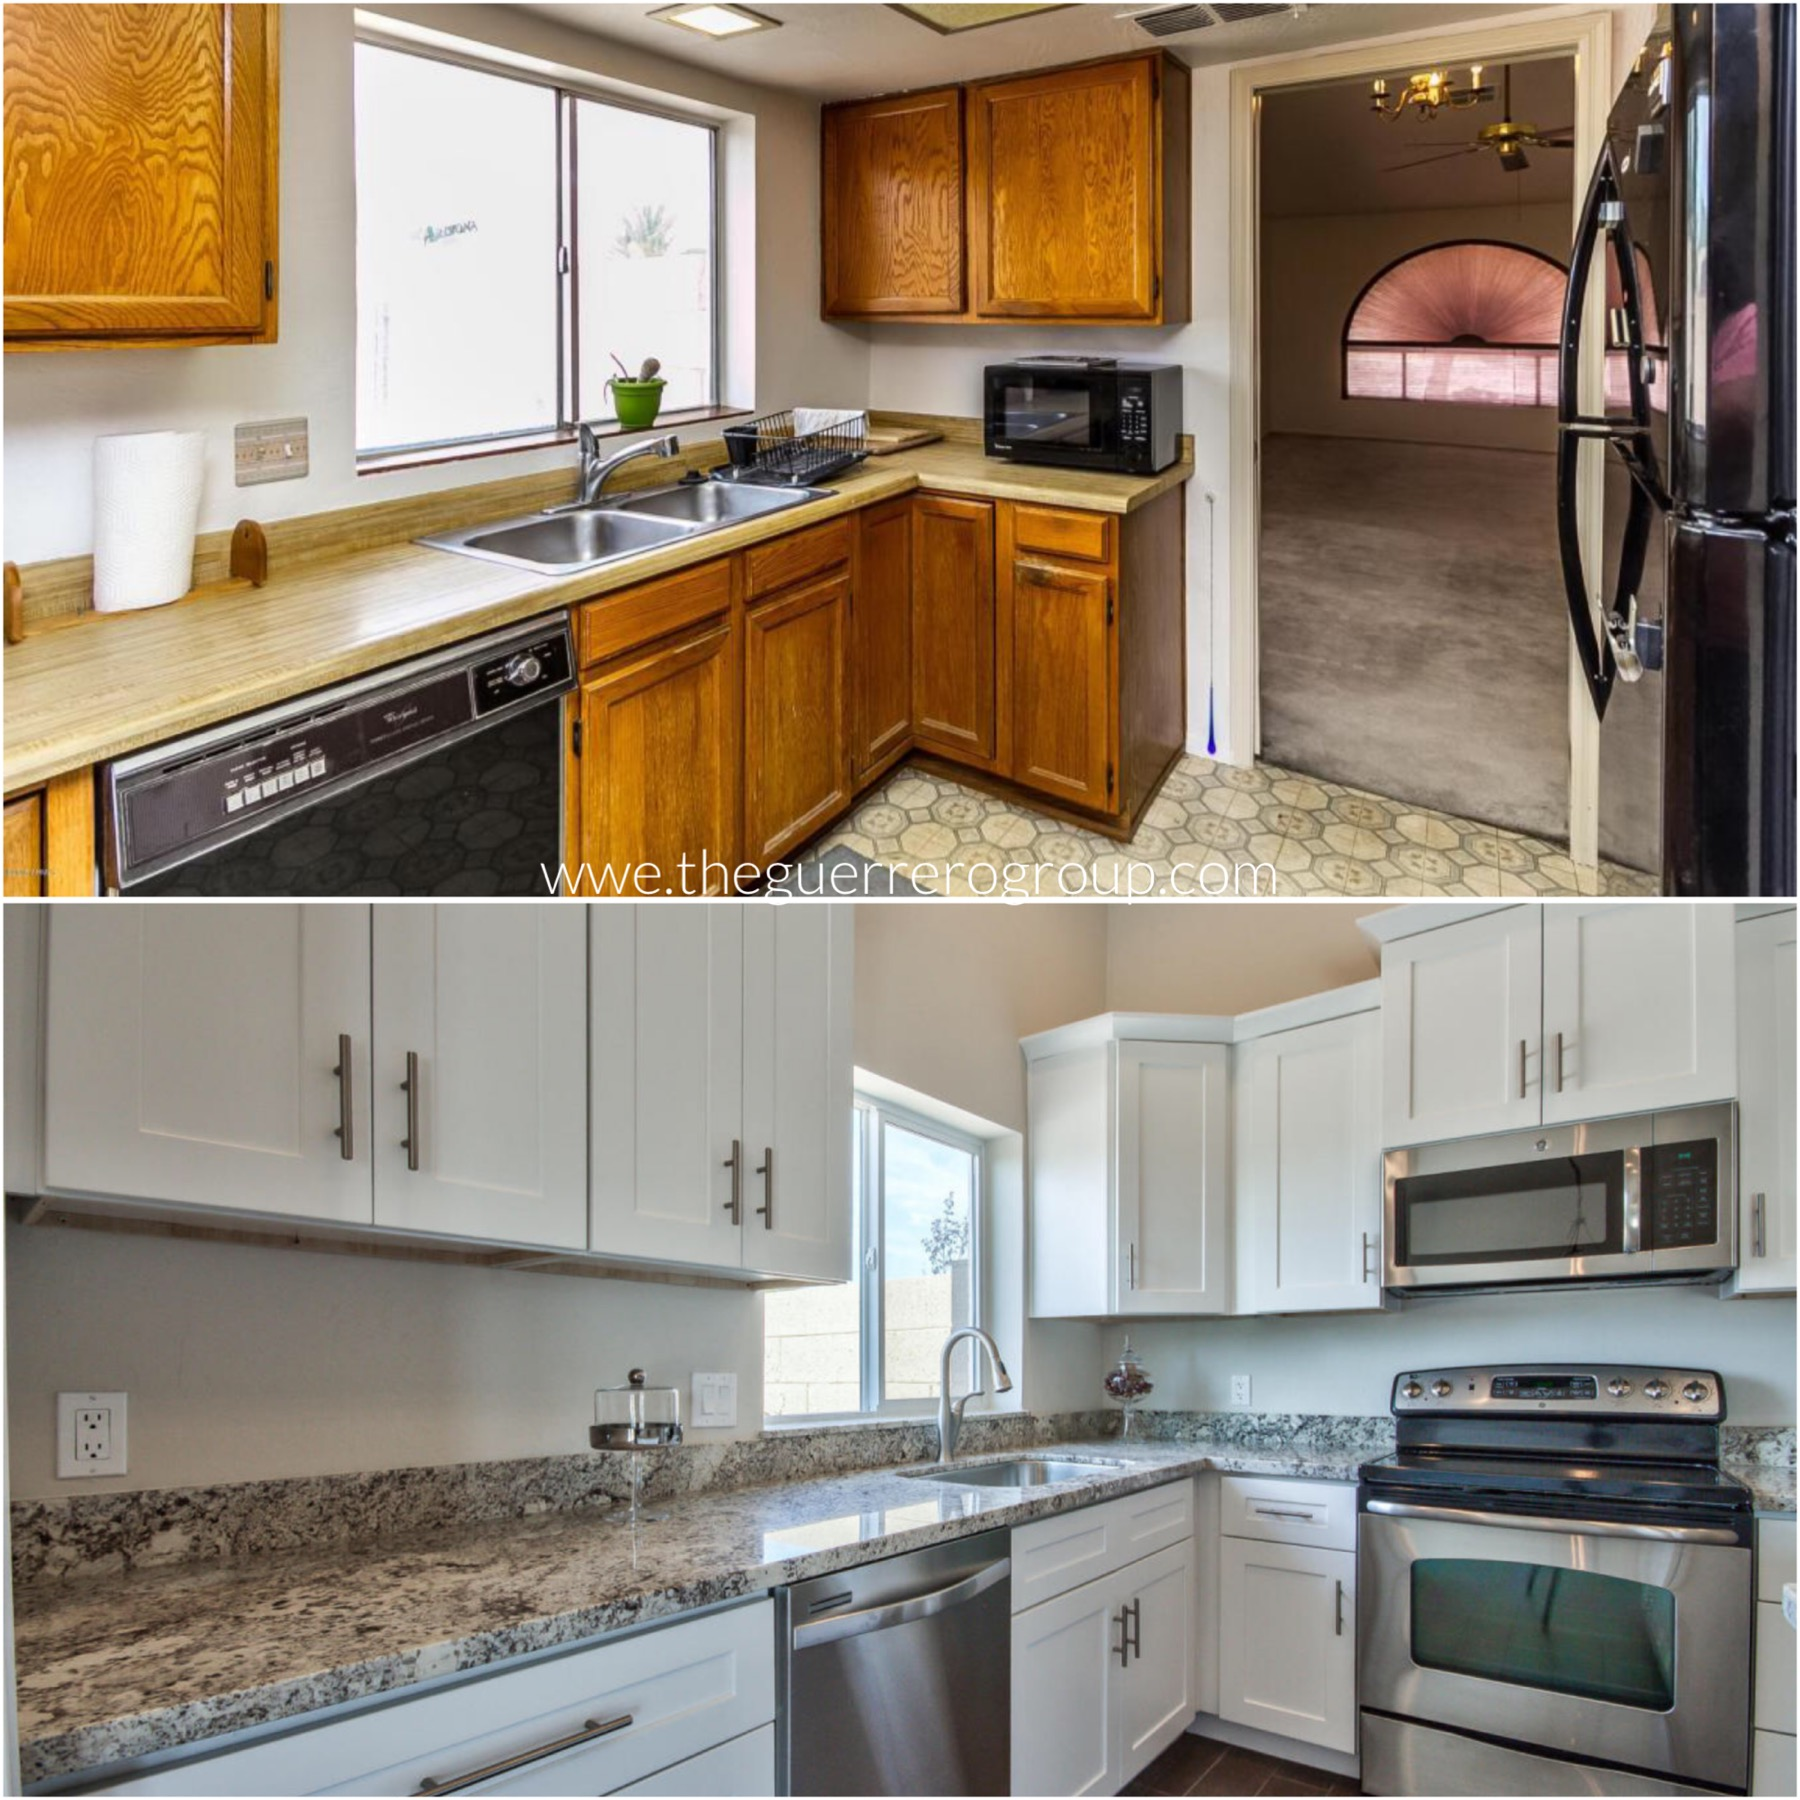 The Guerrero Group offering renovated Chandler Homes for sale over 2,000 Square Feet with Diving Pools in Chandler AZ 85224 Close to the 101 Freeway